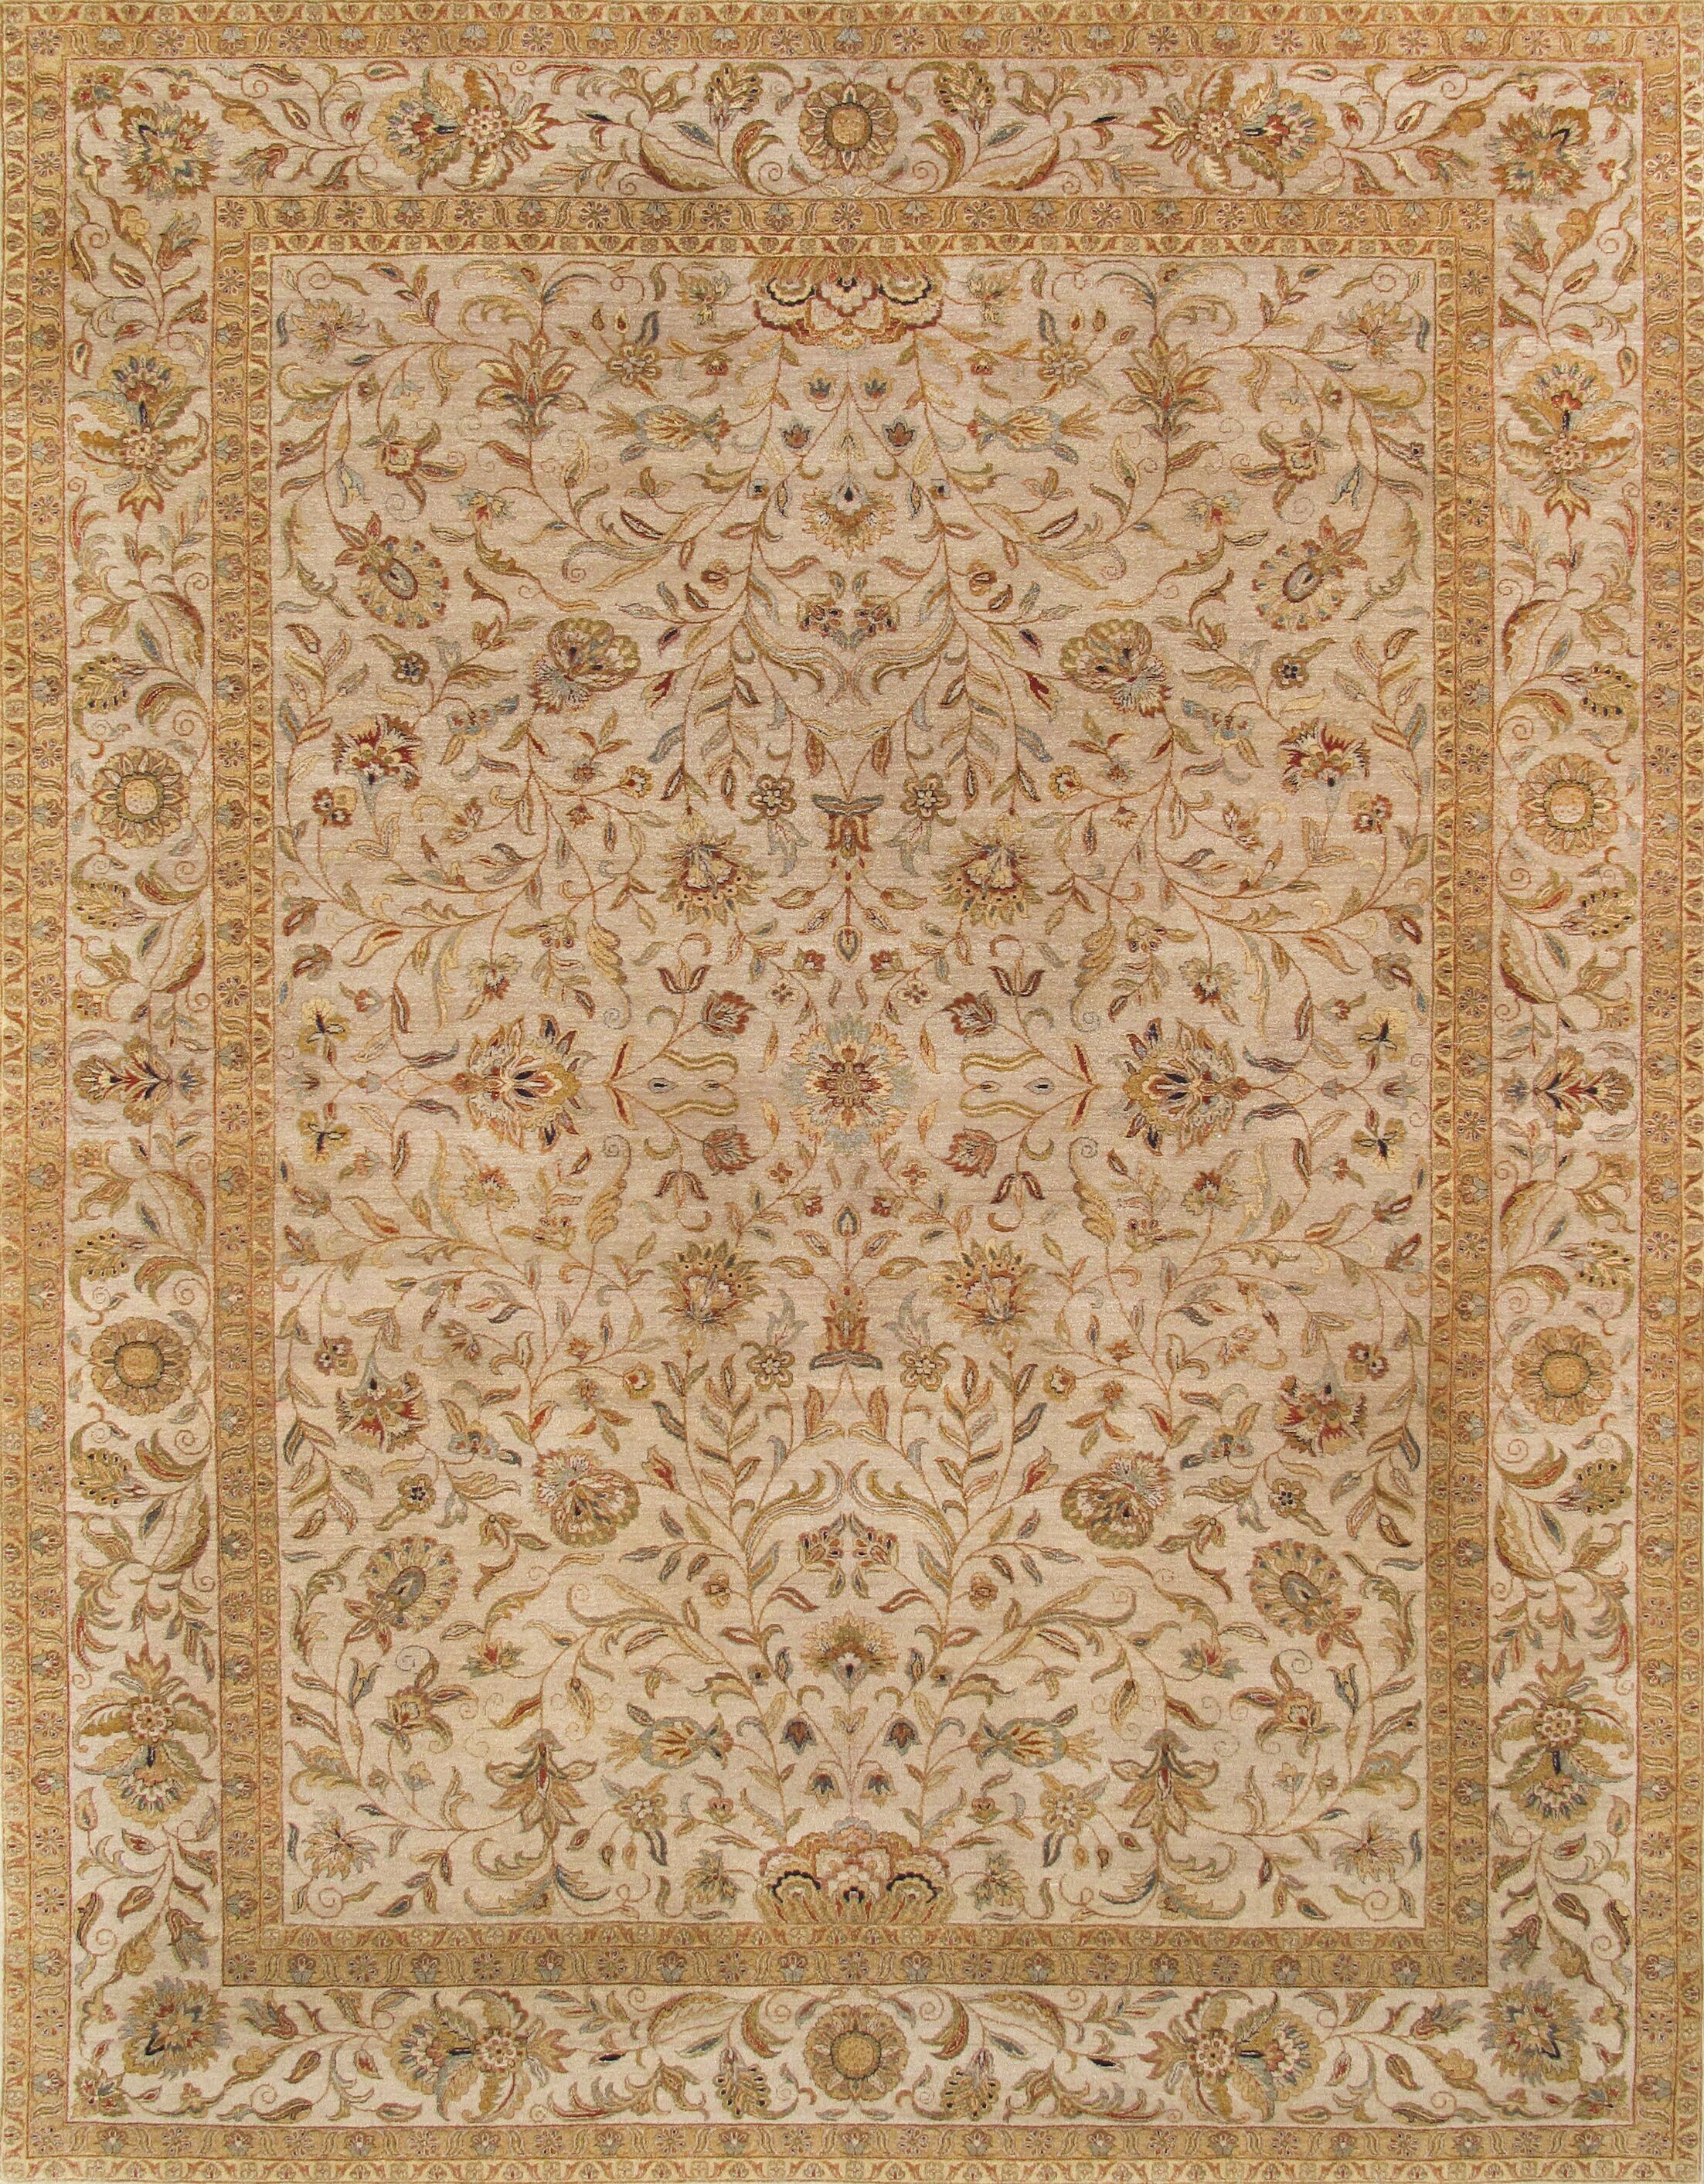 Tabriz Hand-Knotted Wool Brown Area Rug